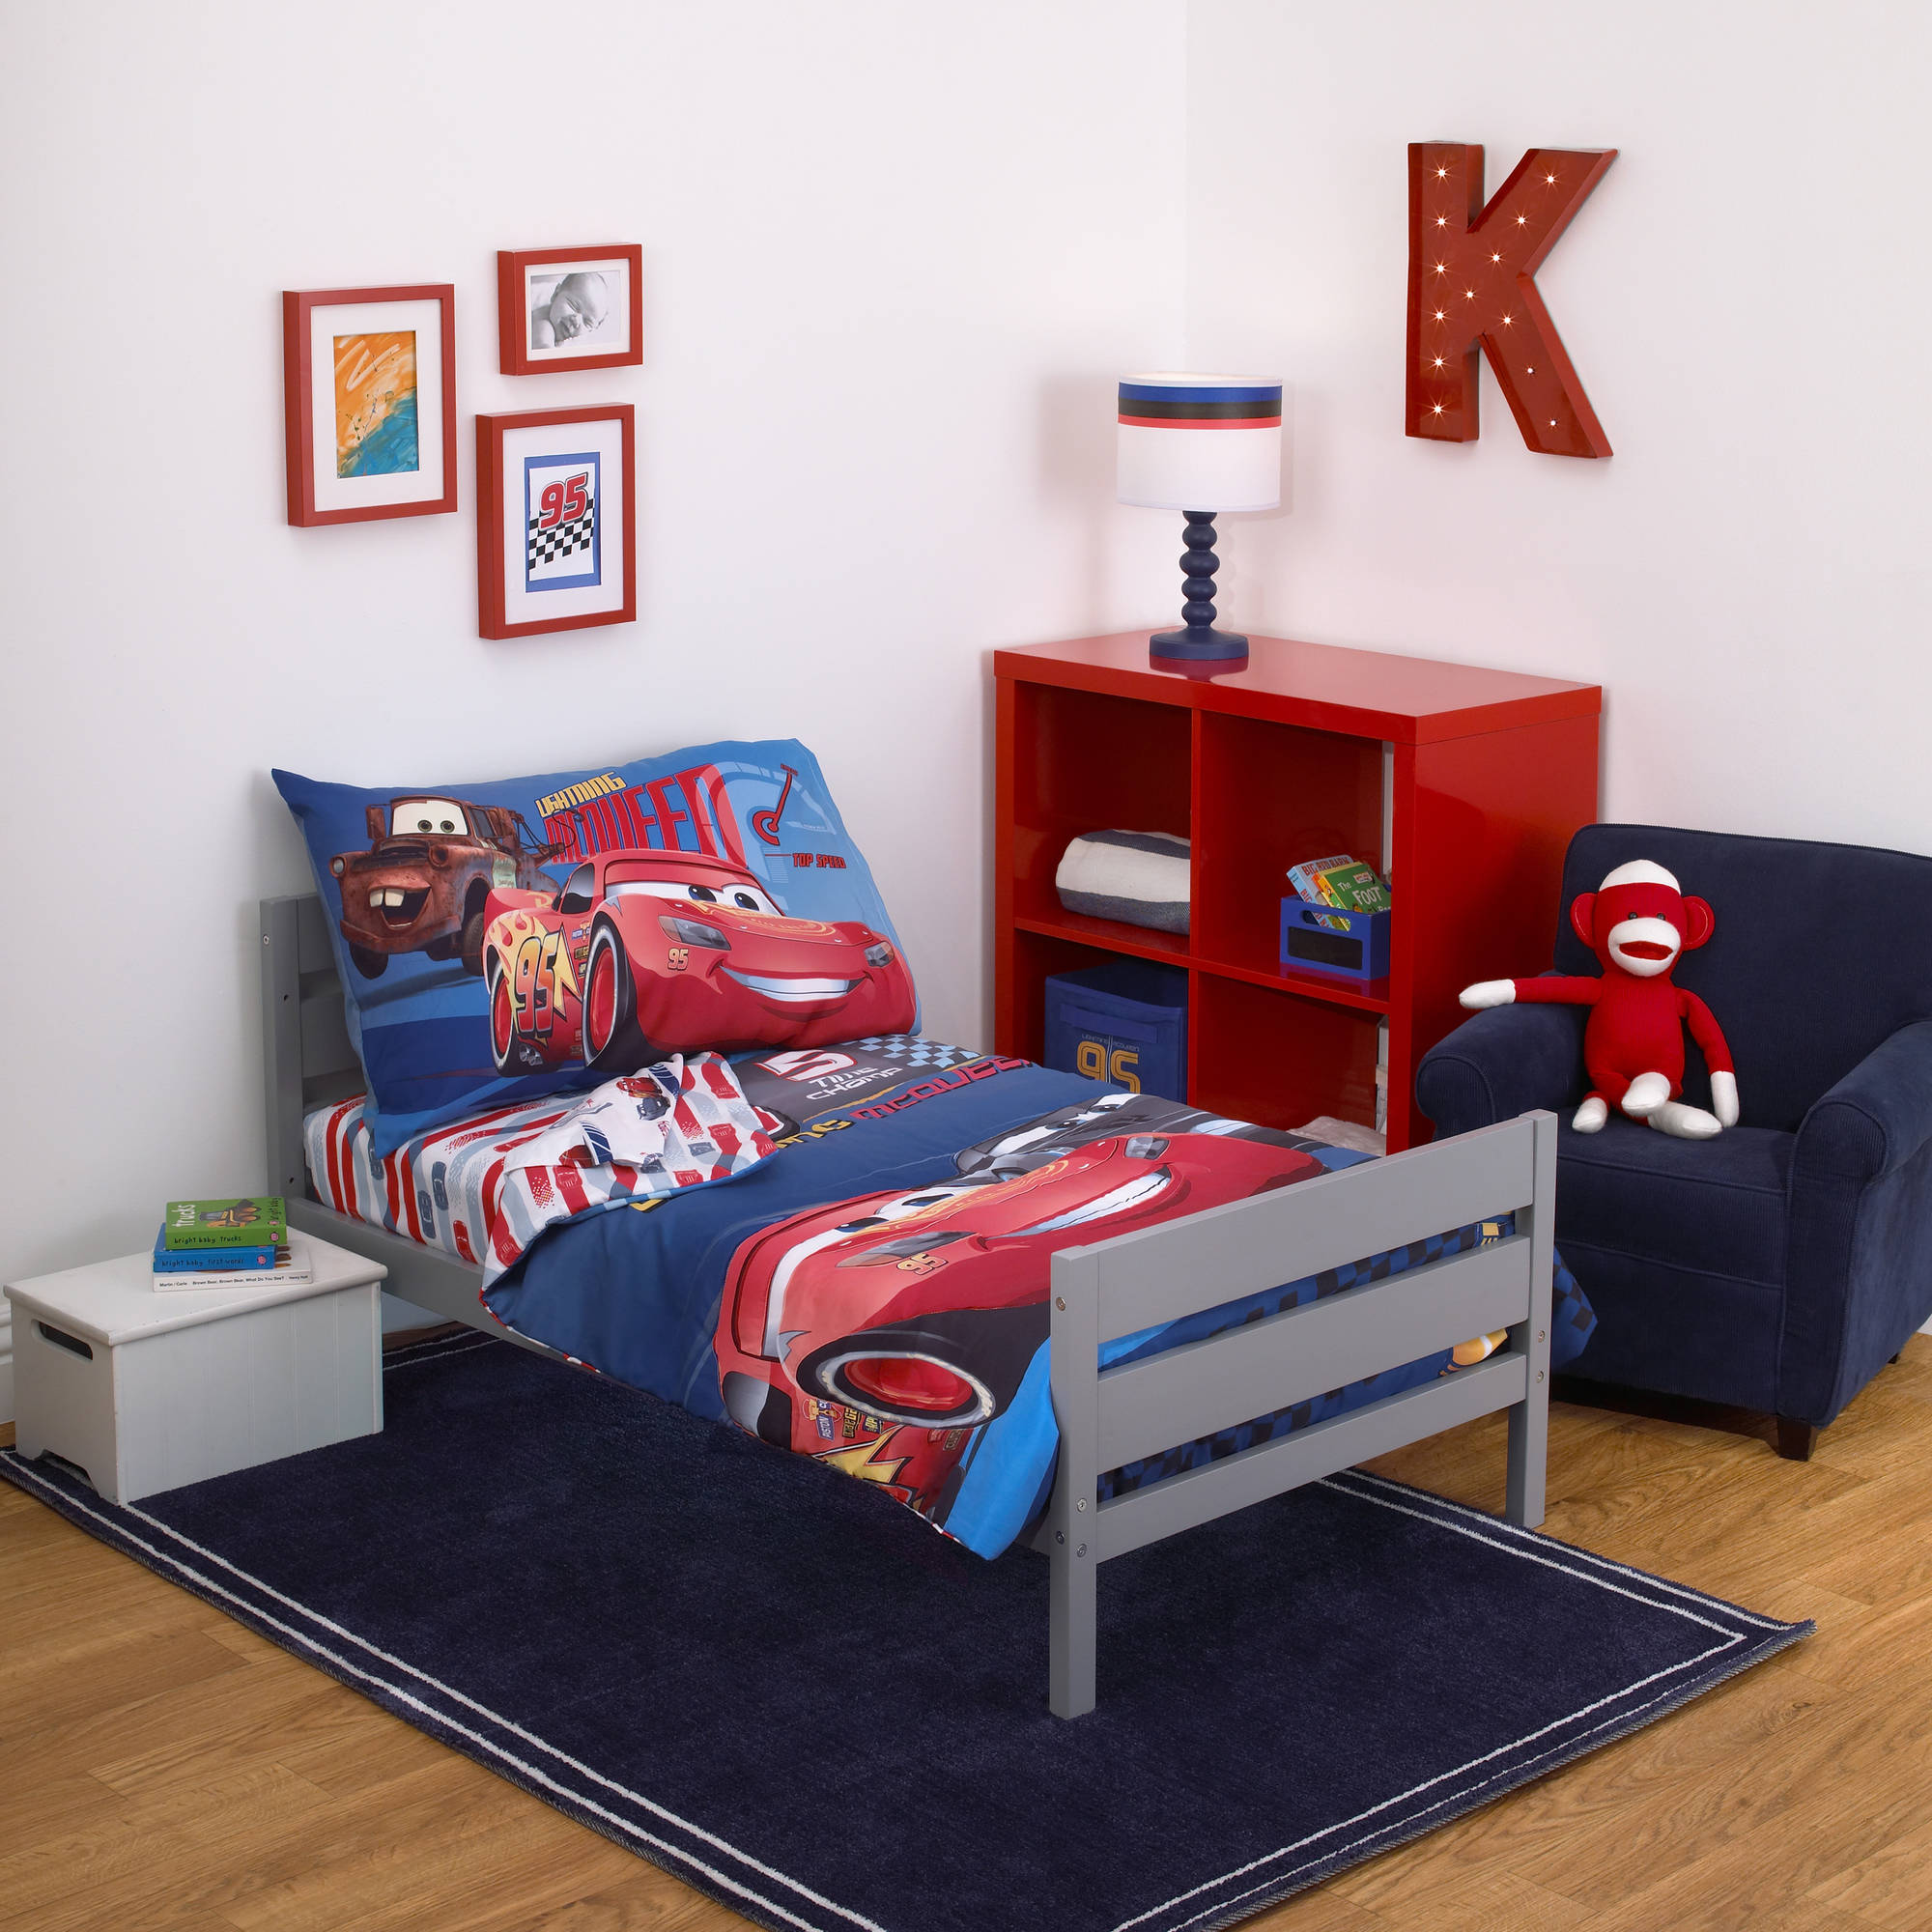 disney cars fast not last 4 piece toddler bedding set walmart com rh walmart com toddler bedroom sets pottery barn toddler bedroom sets ikea